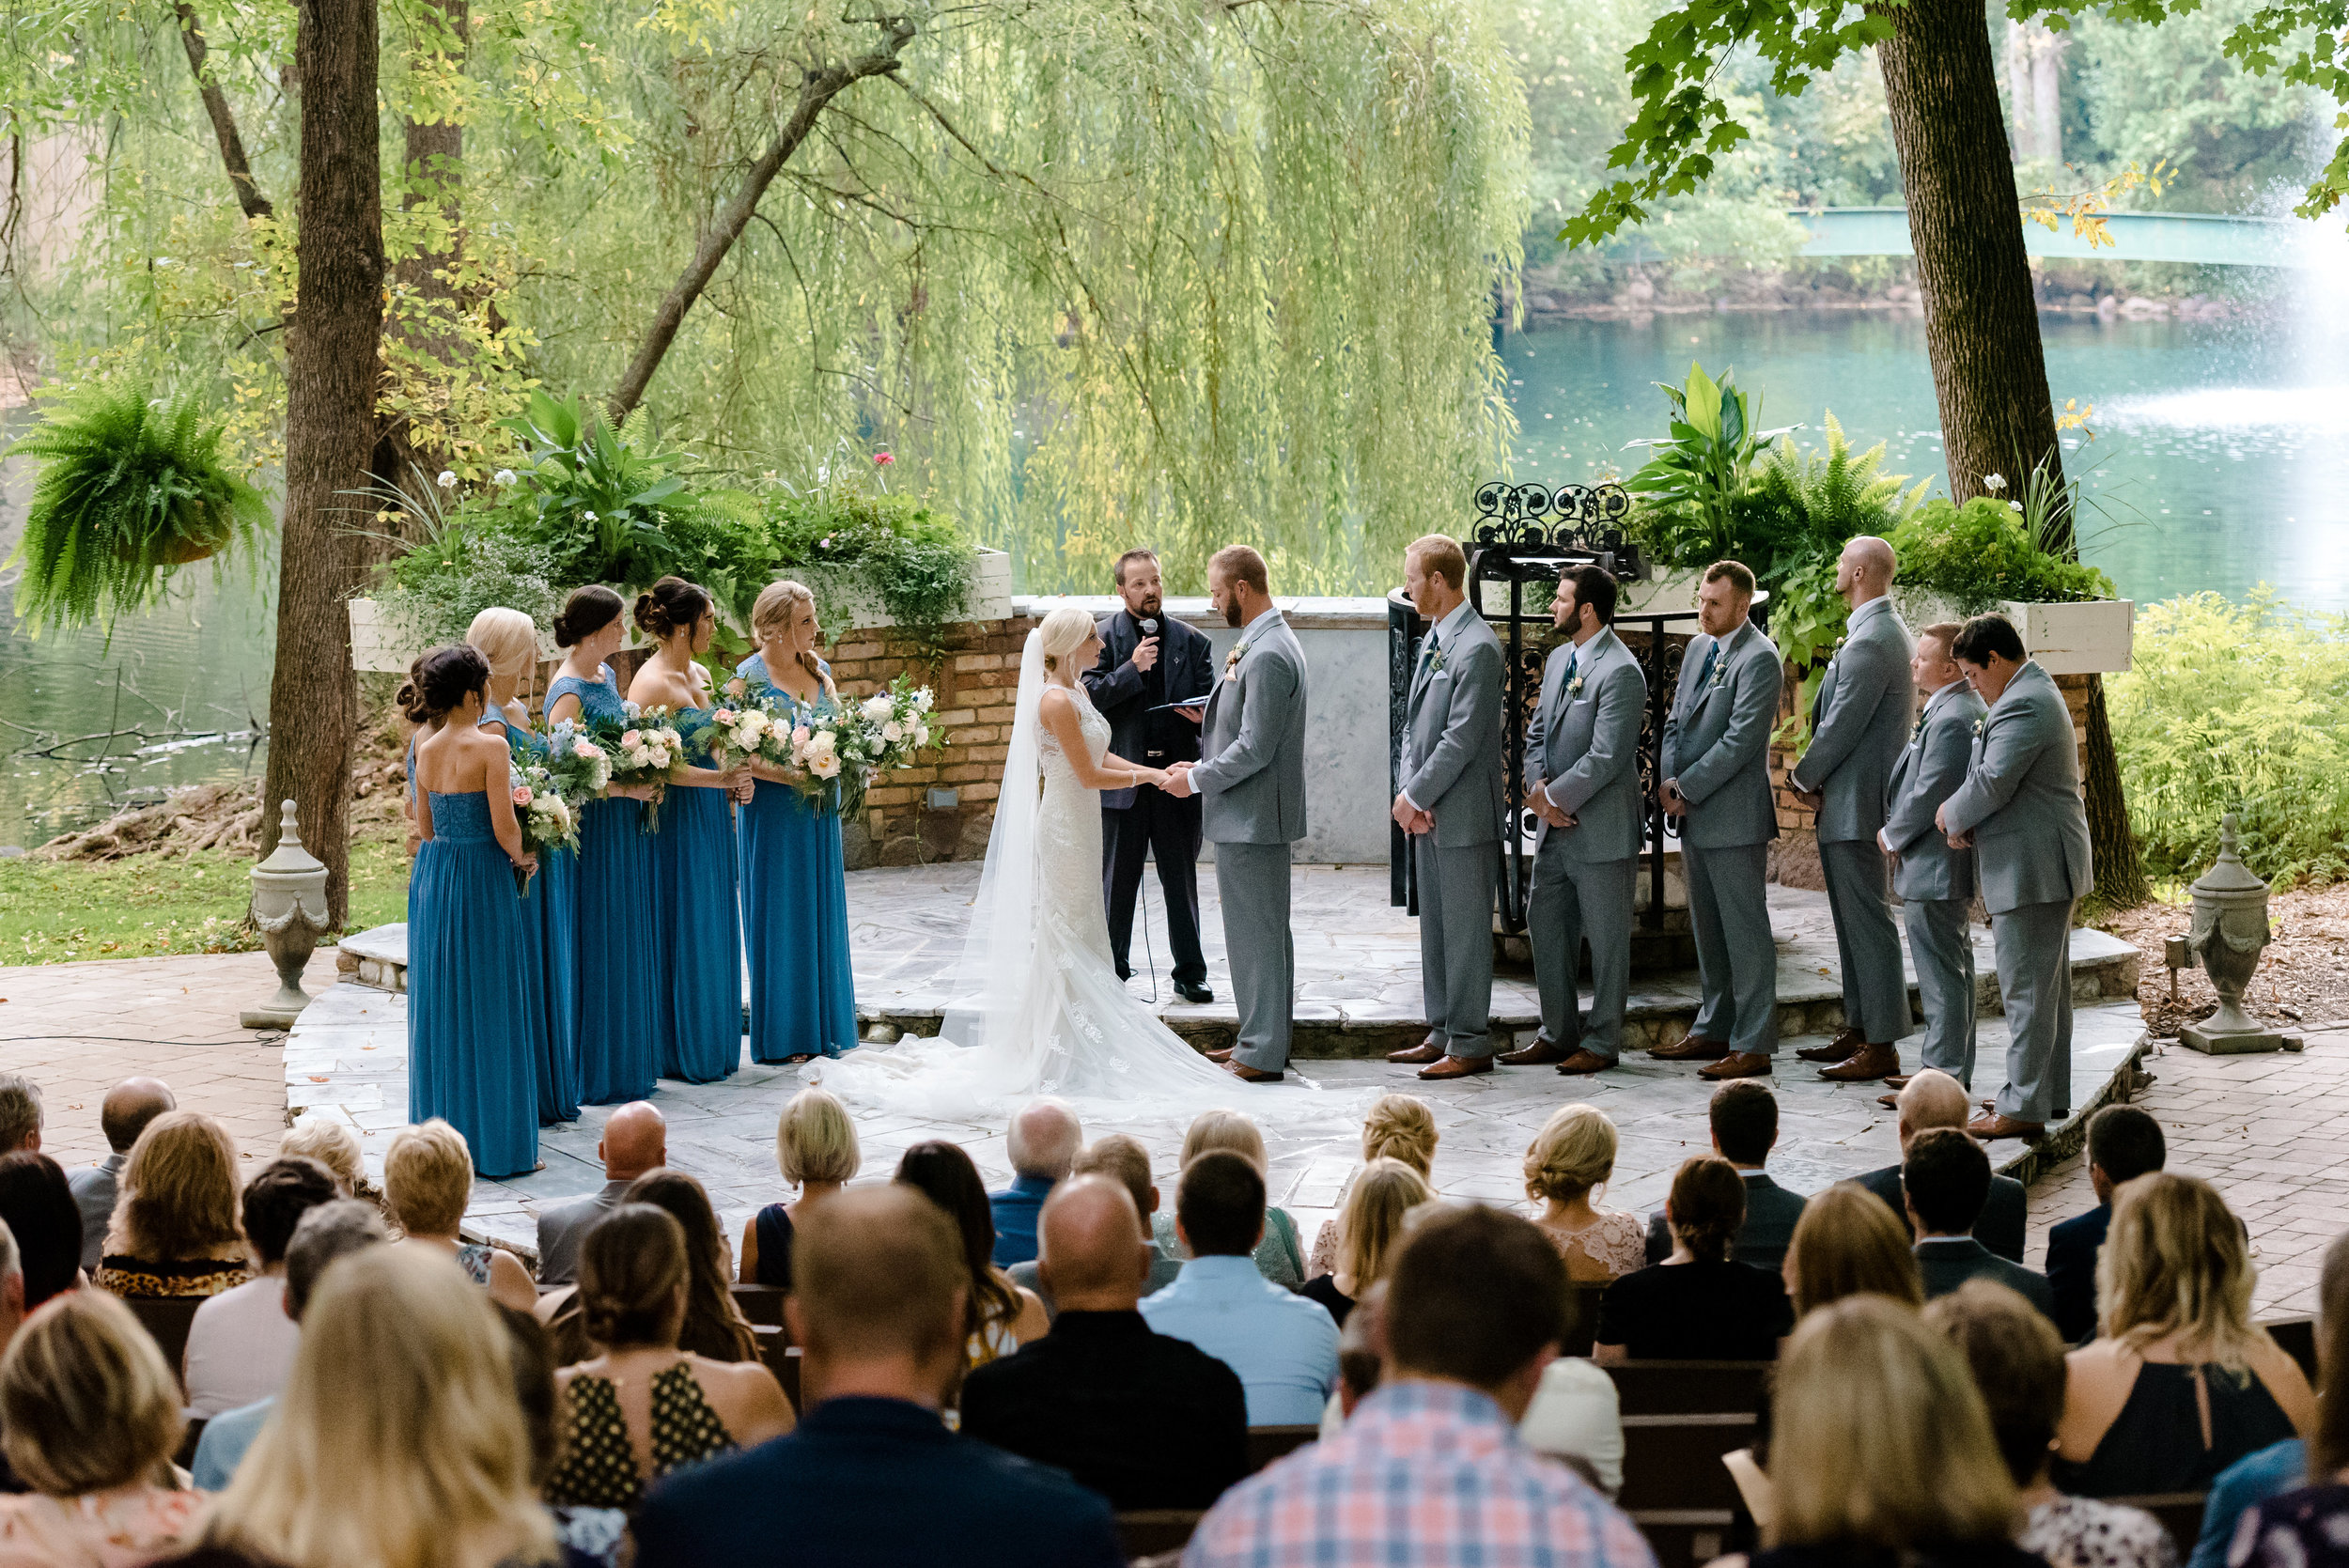 Mikenna and Matt - The Woods Chapel Wedding-693.jpg